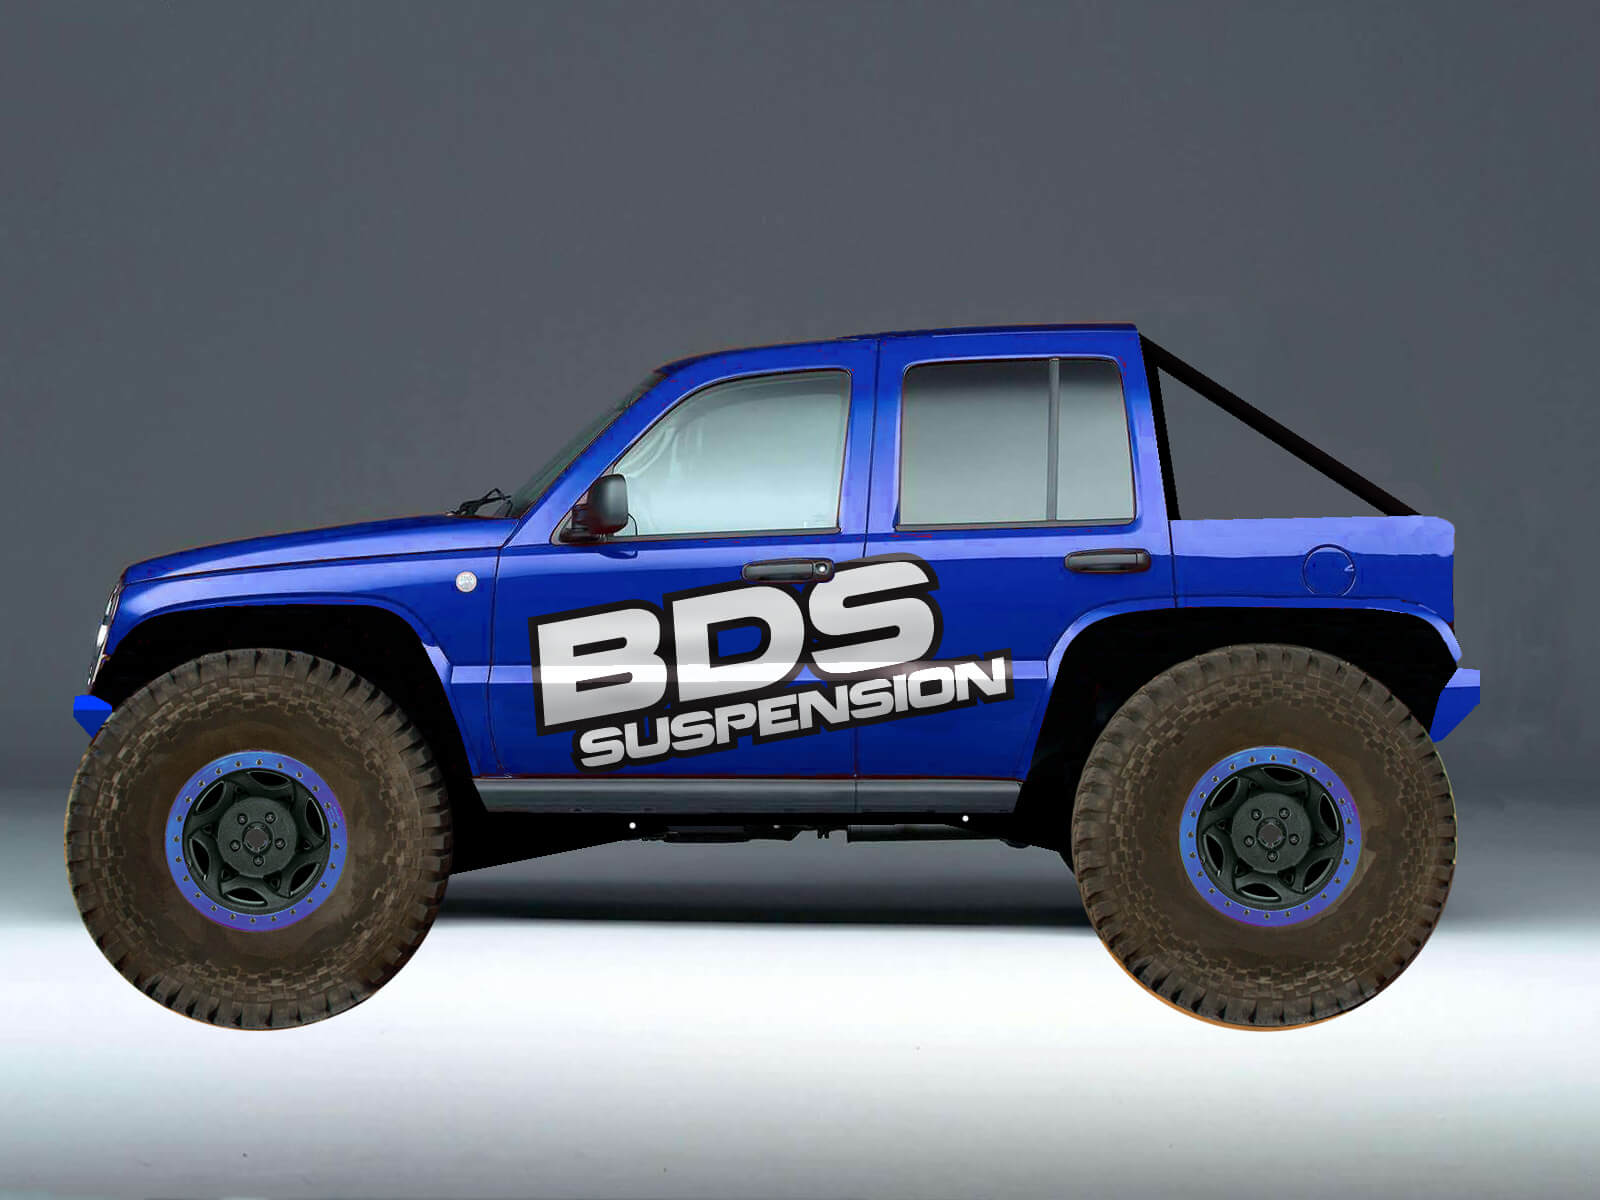 BDS is the official suspension of the 2013 Ultimate Adventure!